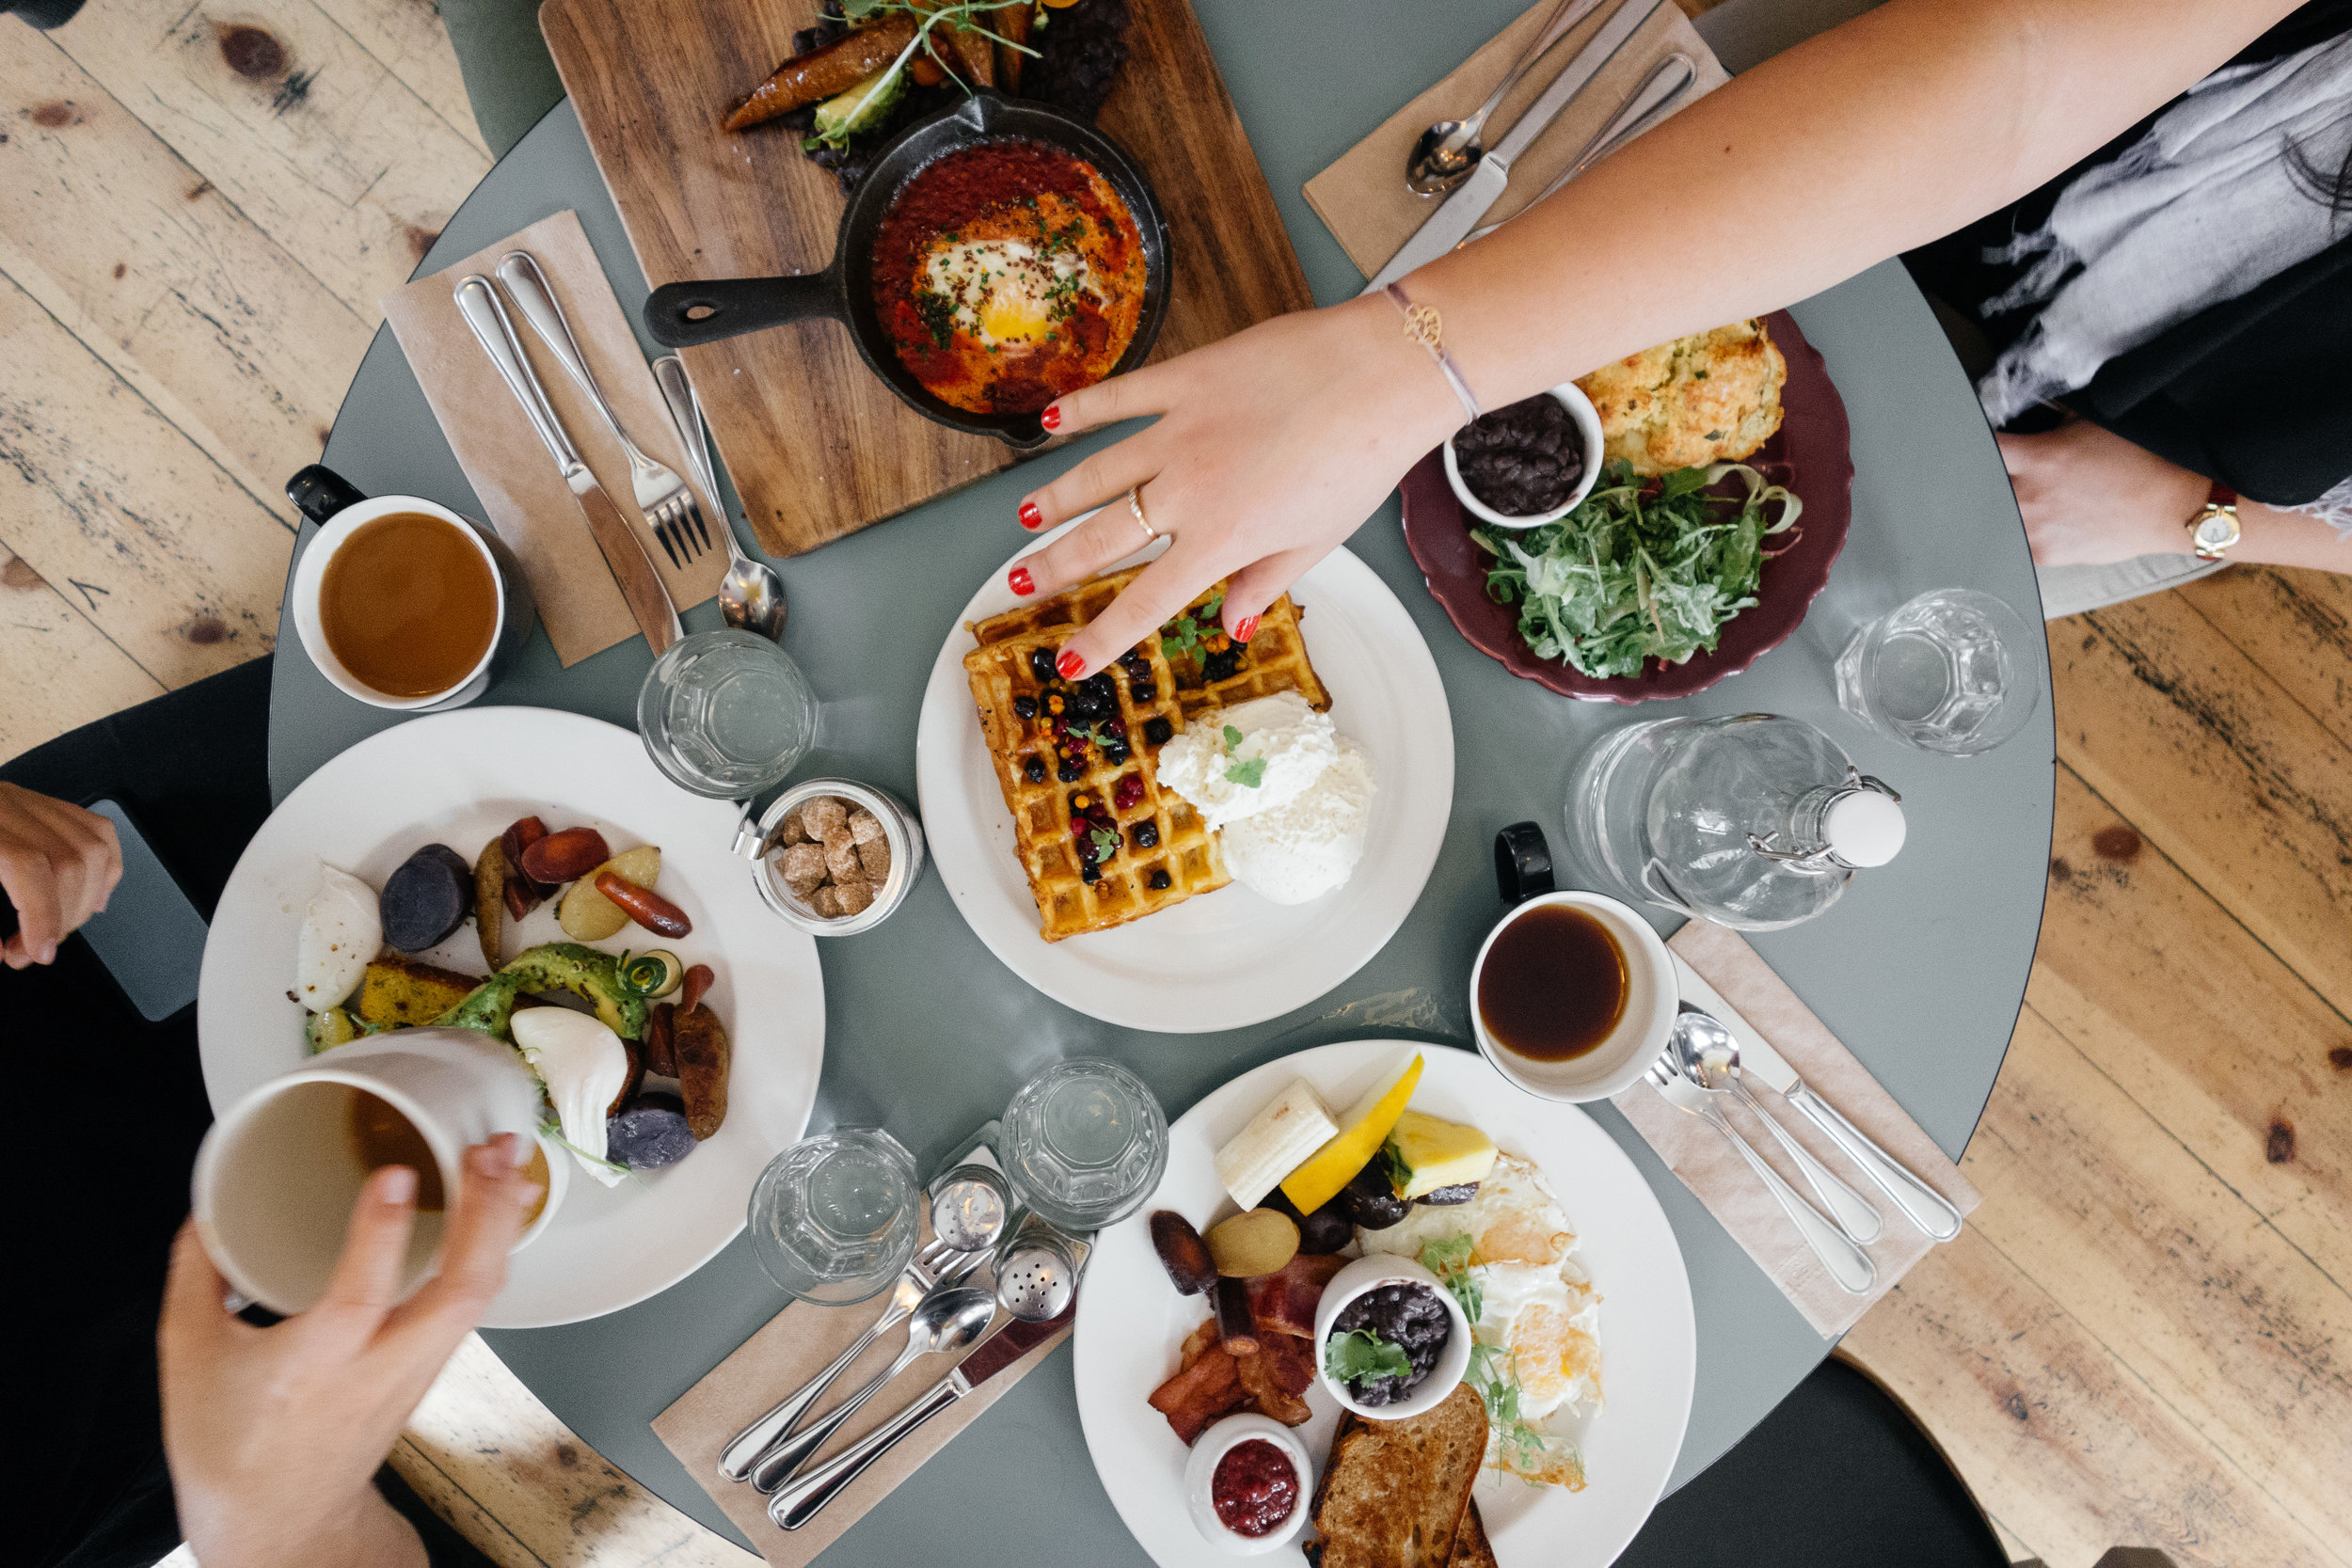 Breakfast, brunch, lunch, dinner, snacks, drinks.. all covered on campus! - Otaniemi has a variety of restaurants and cafes to choose from.